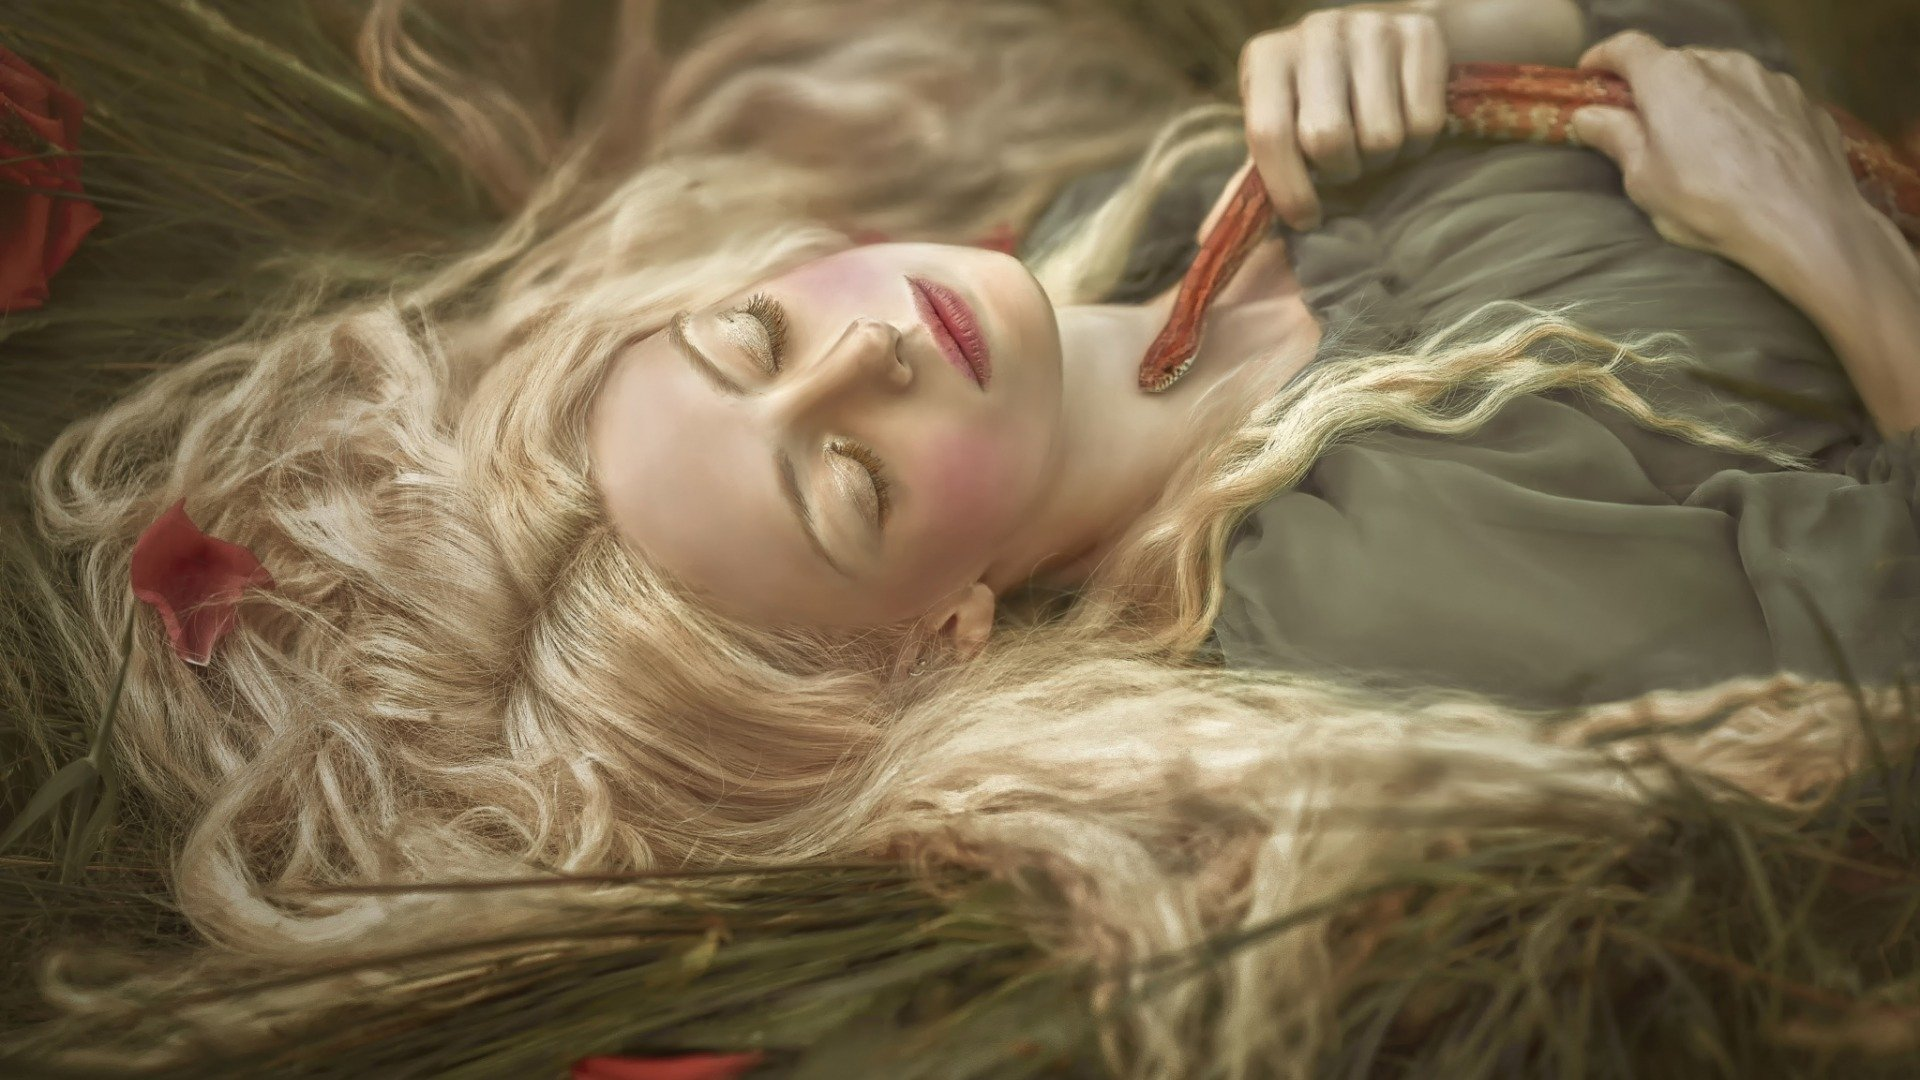 Mid summers dream full hd wallpaper and background image women mood woman sleeping snake girl blonde wallpaper voltagebd